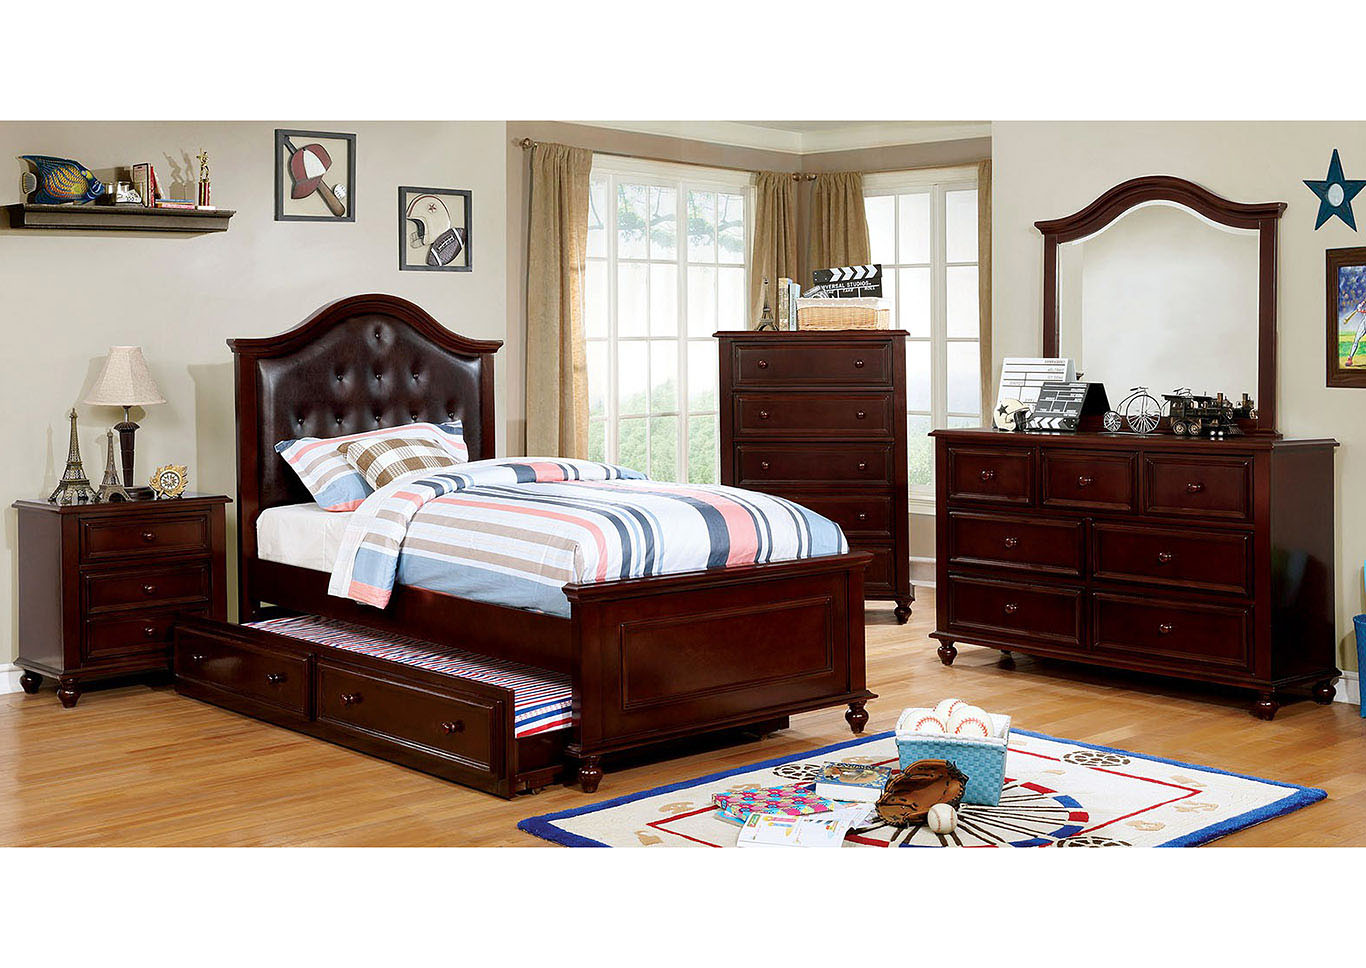 Olivia Dark Walnut Full Bed,Furniture of America